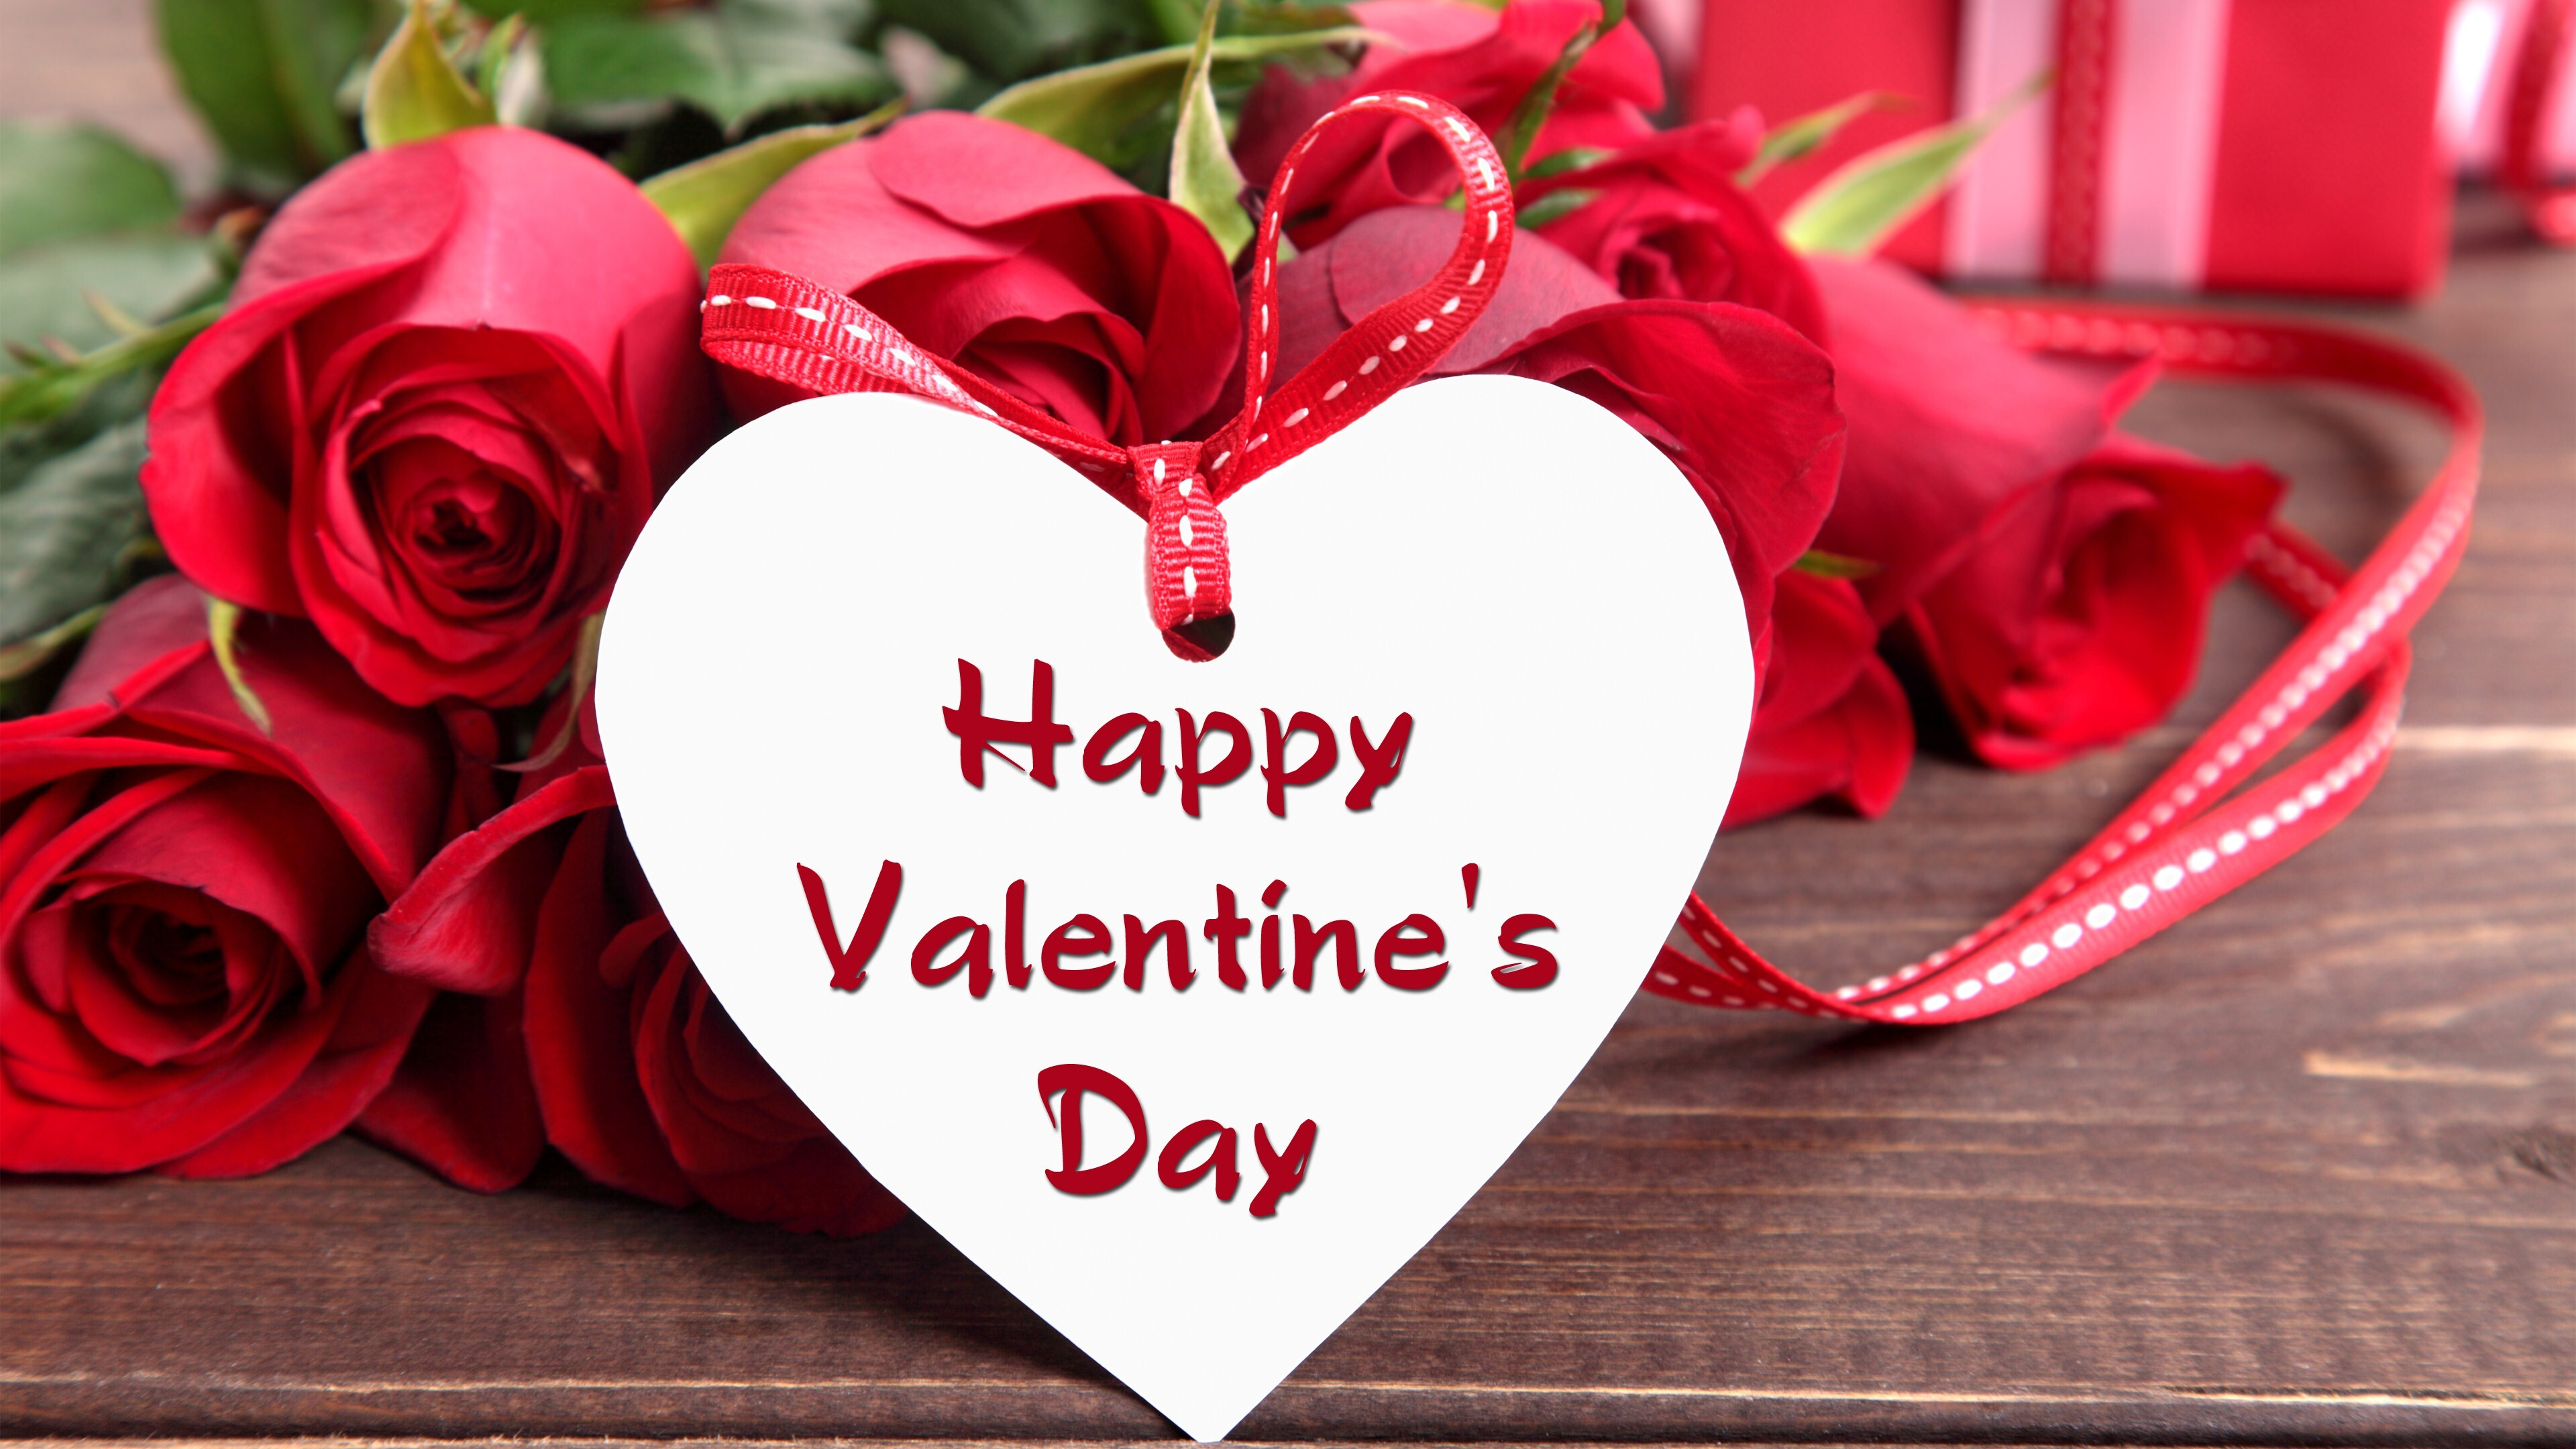 valentines day hd wallpaper background | hd wallpapers